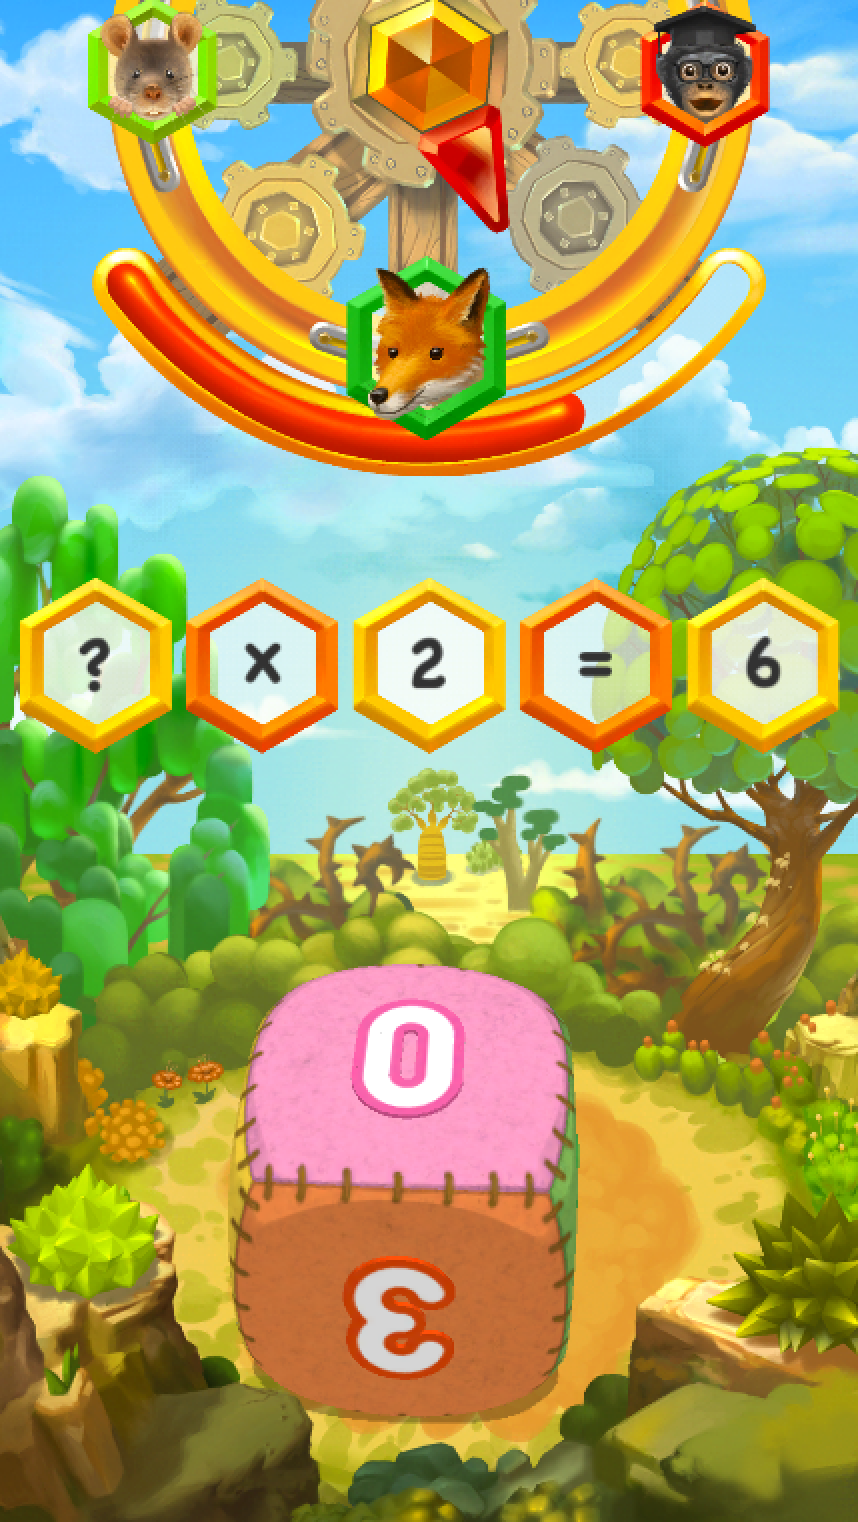 Level 2.숲 (Forest)